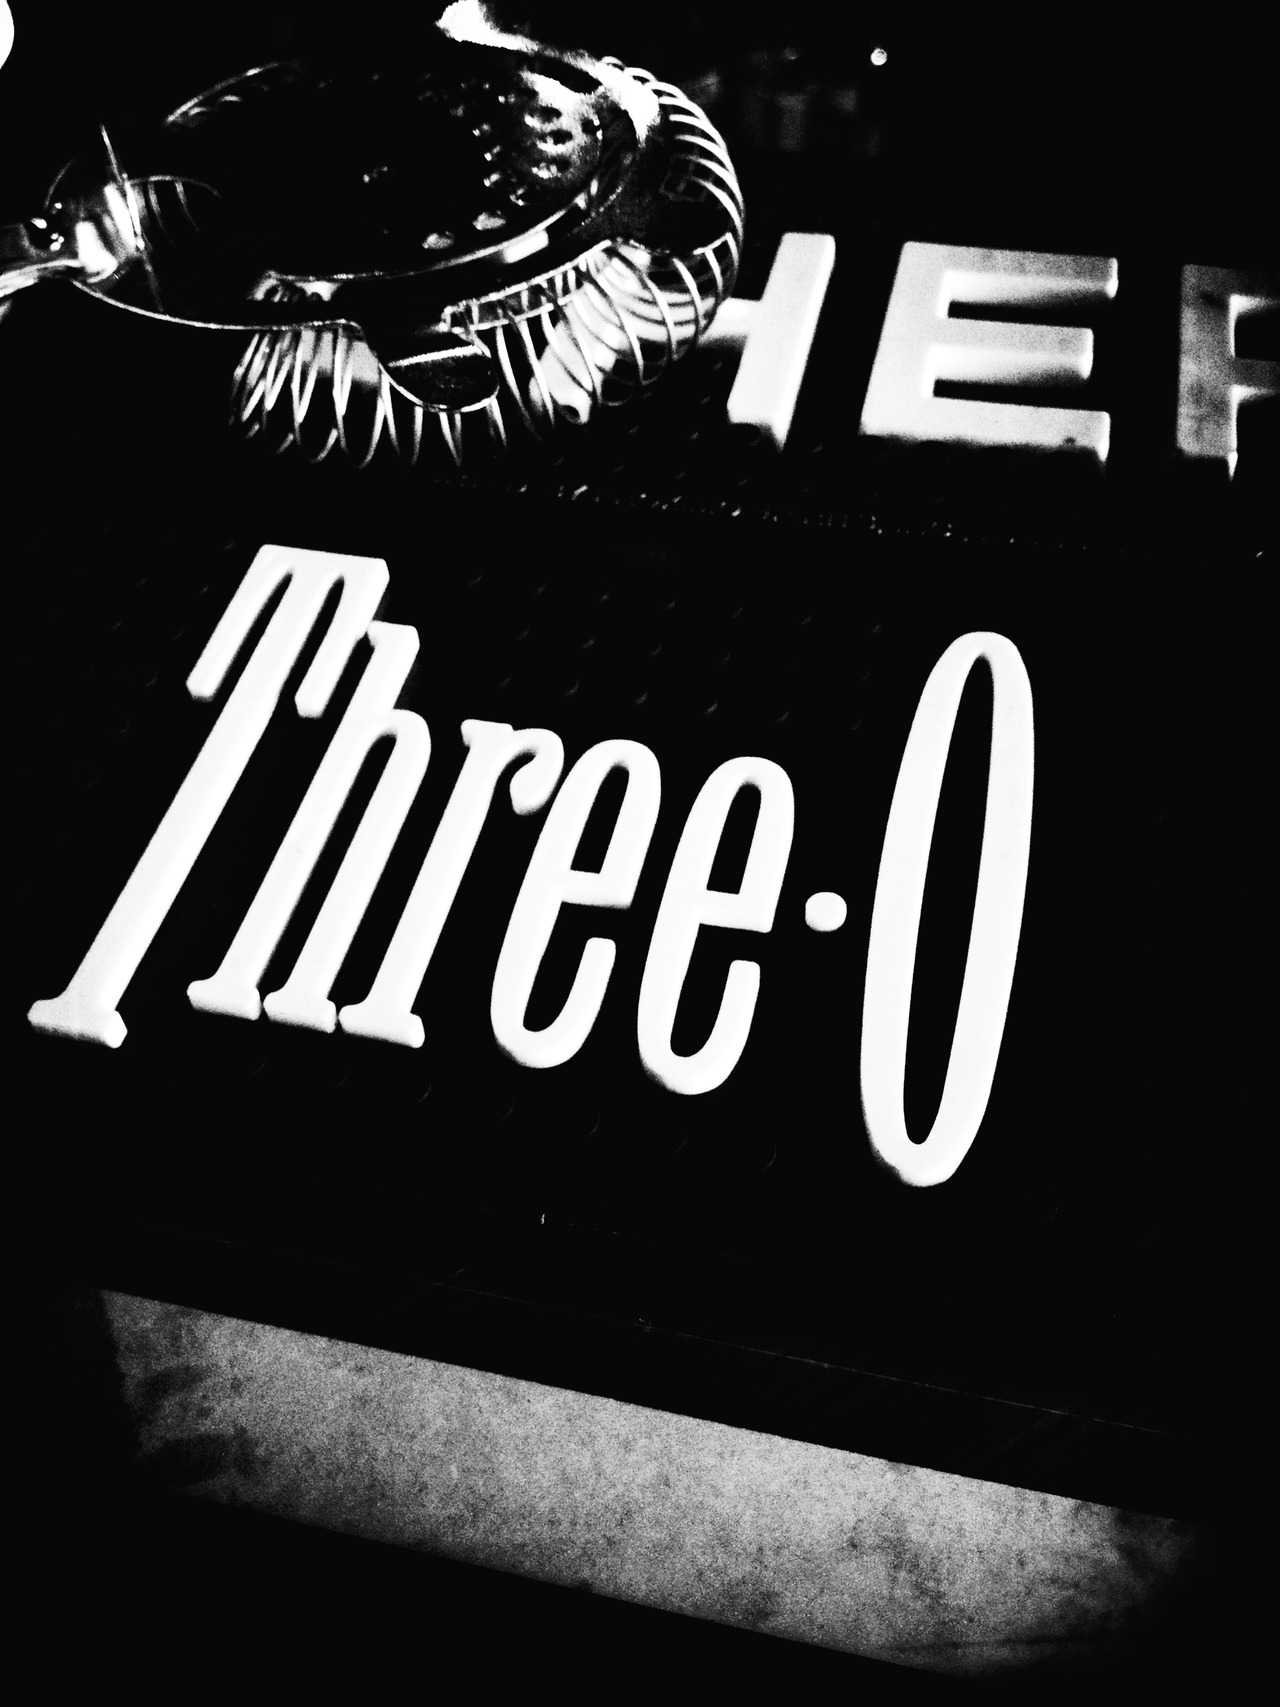 Thee • 0 #peppersearching #pepper #photos #type #three #wilmington